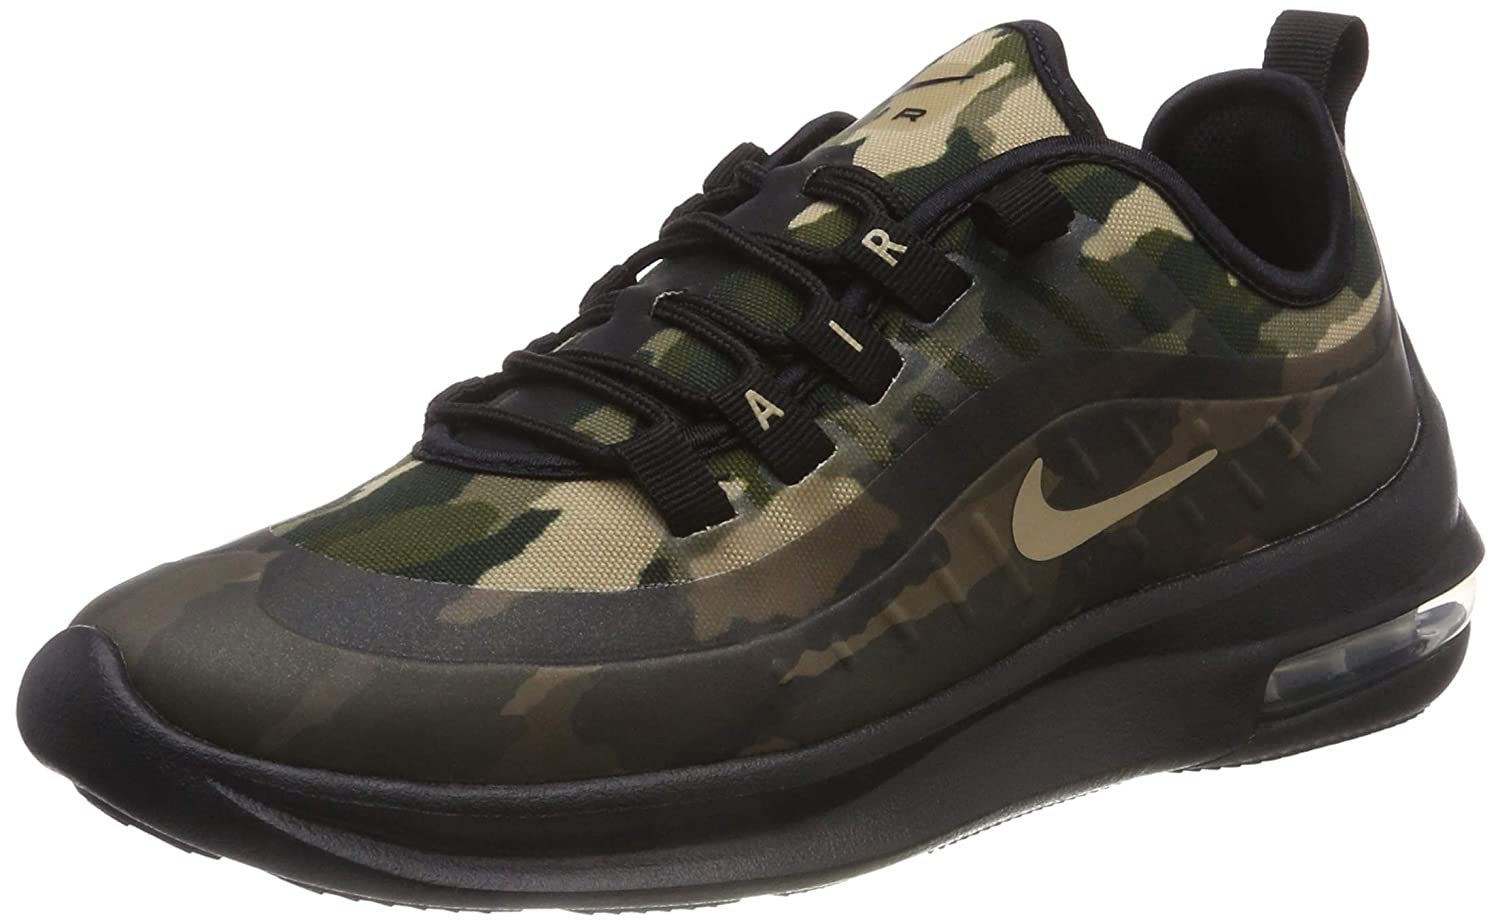 Nike Men's Air Max Axis Premium Shoes (8.5, BlackTan)